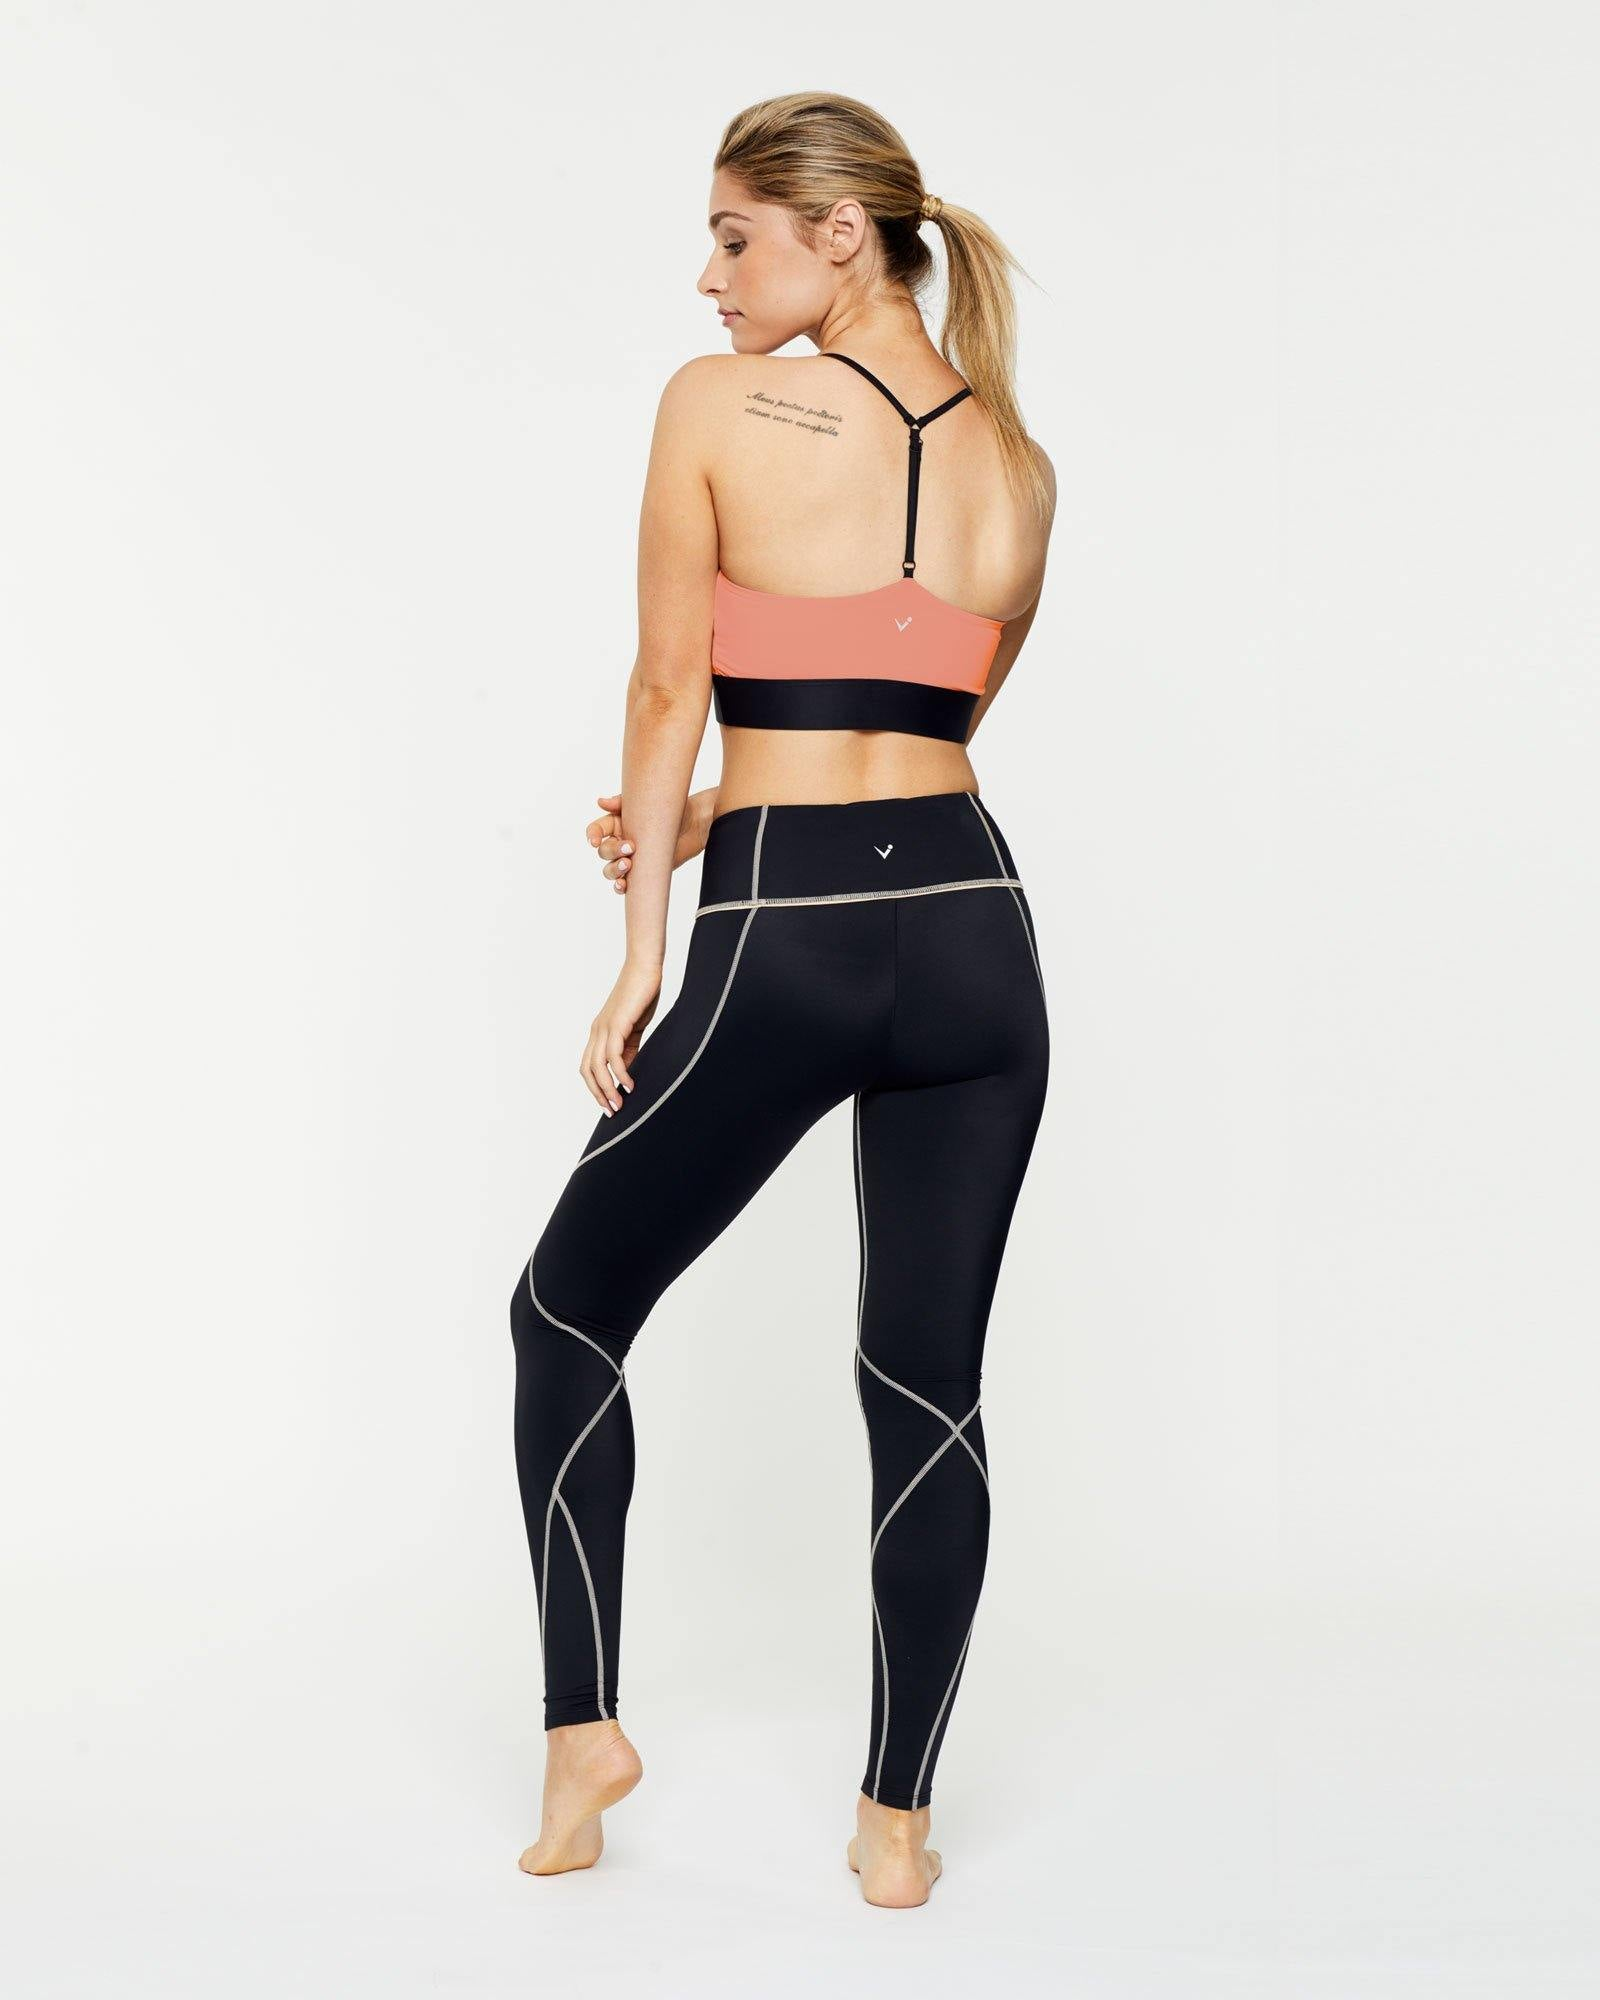 Trapezius Warrior Sophisticate peach crop top high neck finish with contrast black binding, halter back worn with Vastus mid waist full length legging, back view